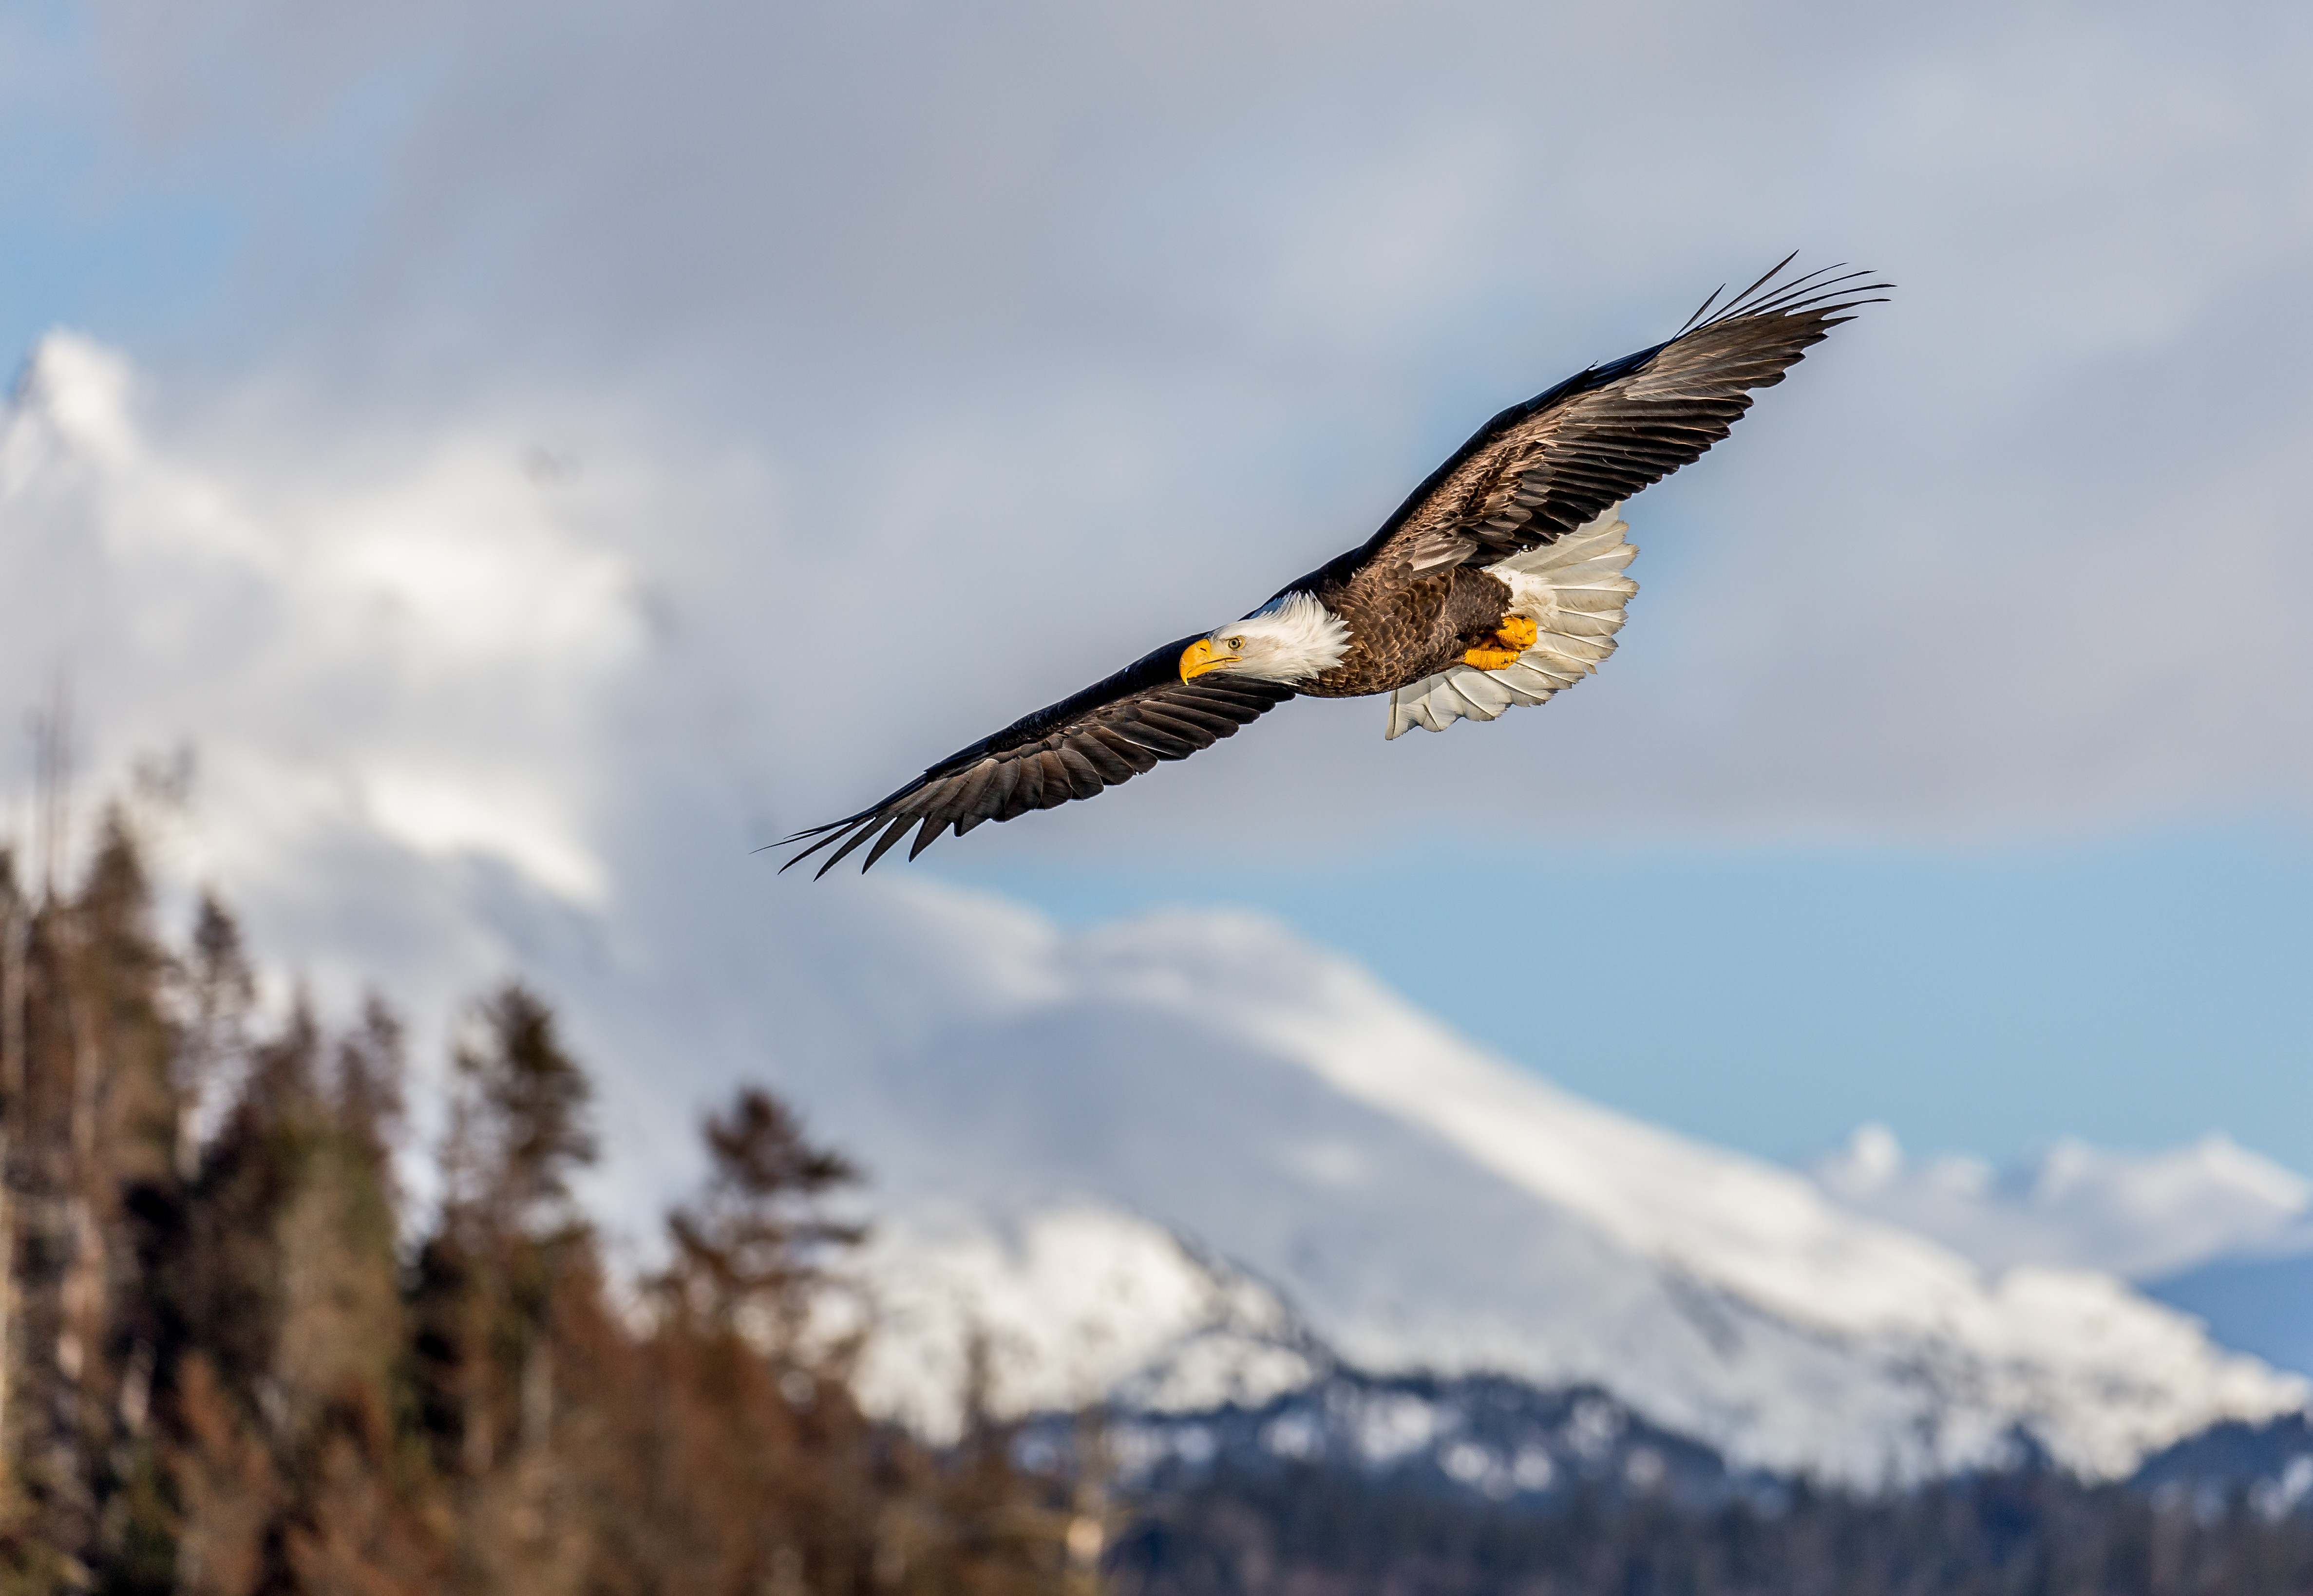 Best Eagle wallpapers for phone screen